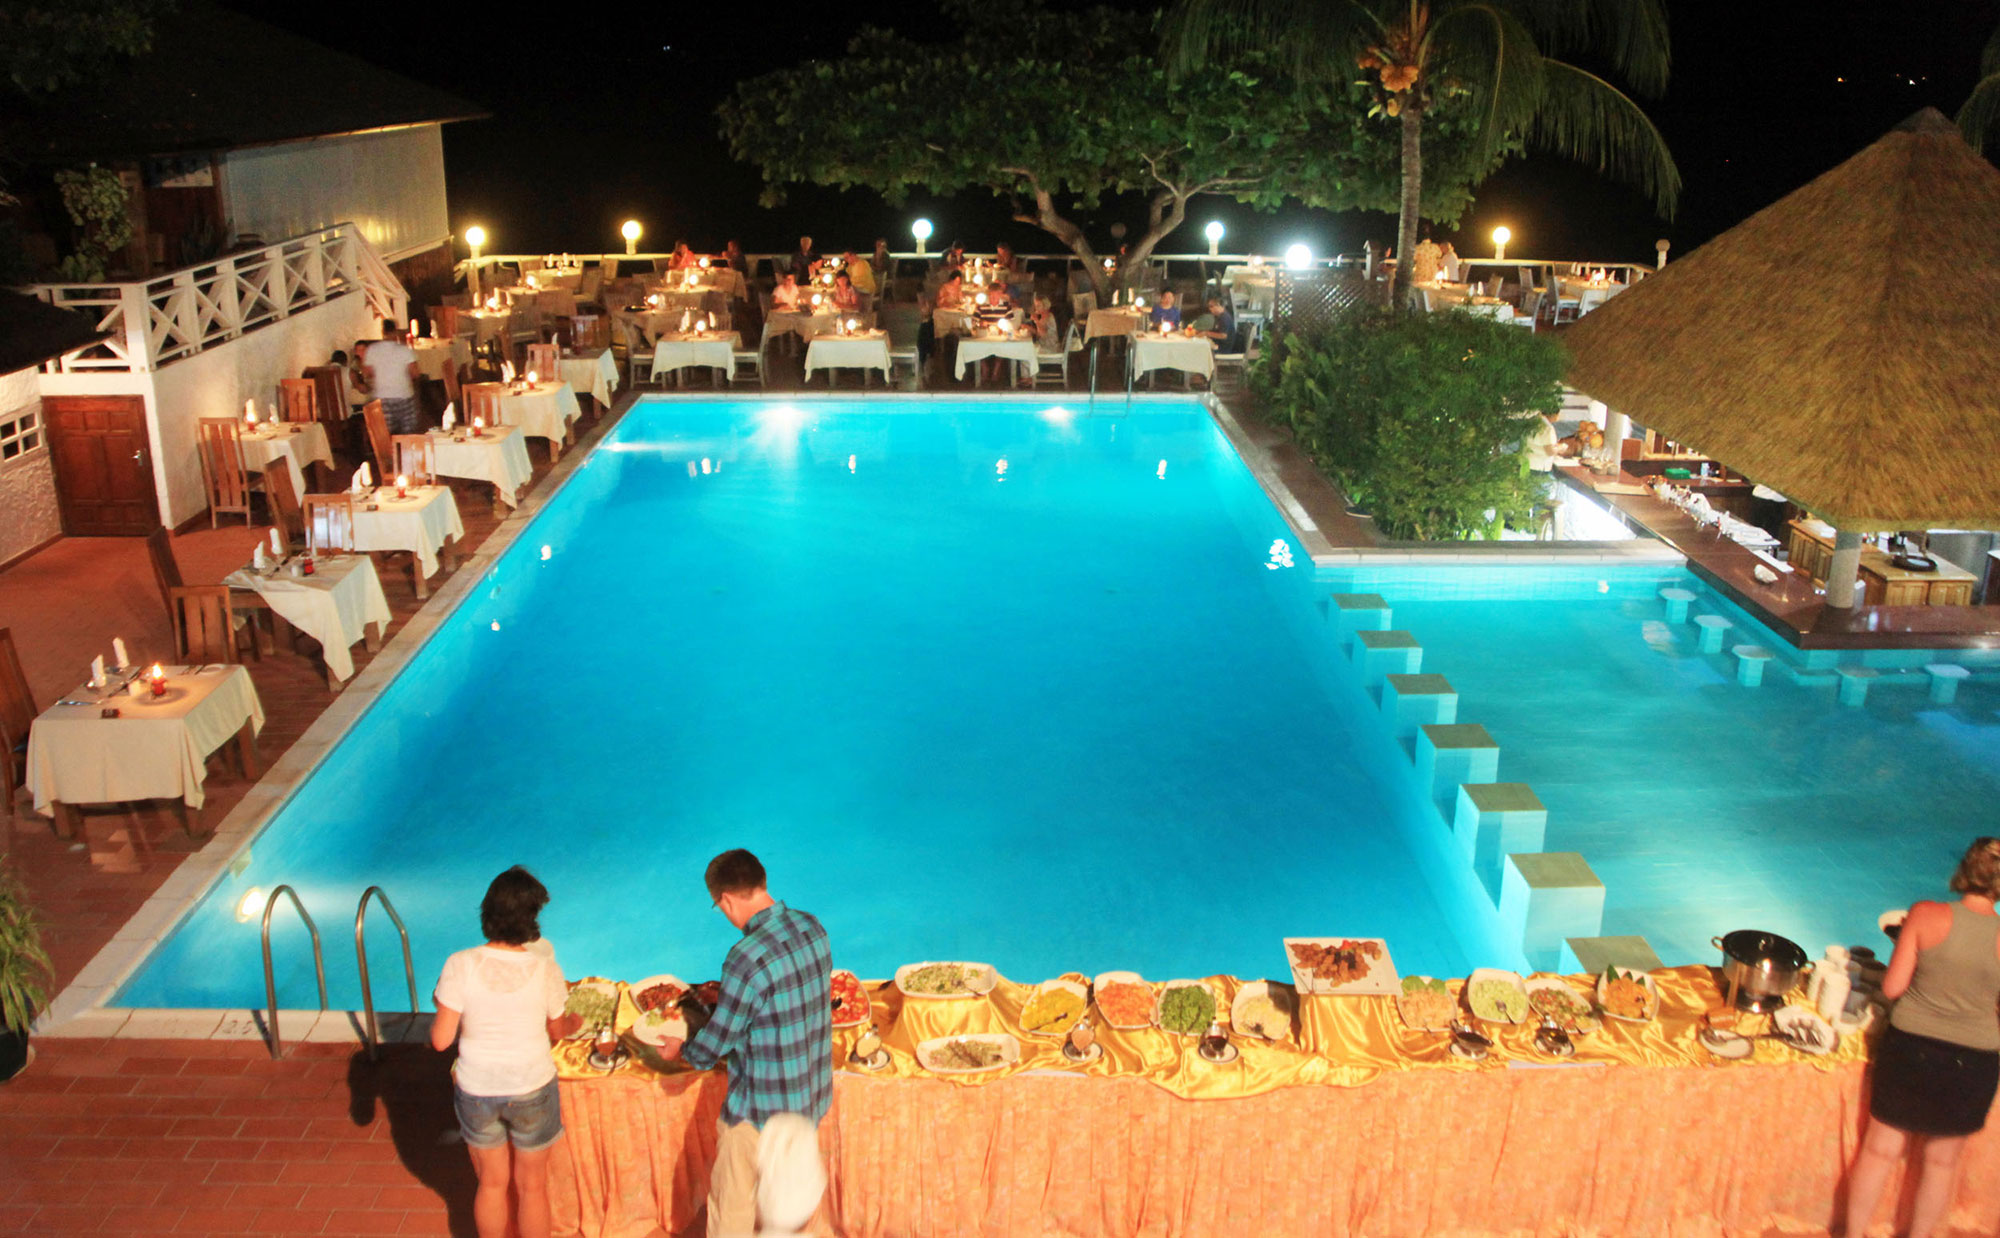 The Pool Side Restaurant